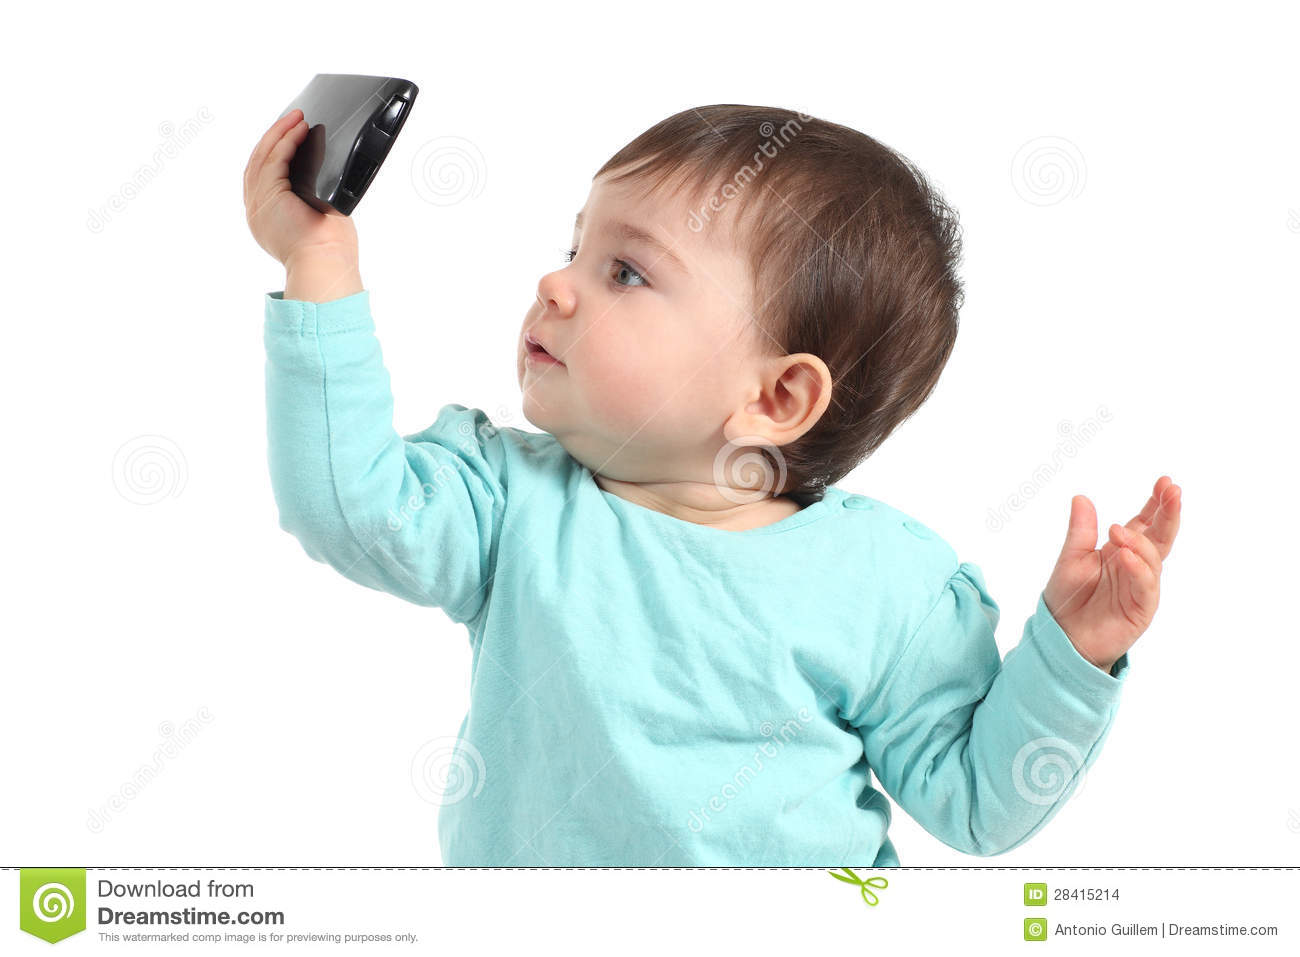 Cute Asian Babies Wallpapers Baby Watching A Mobile Phone Stock Images Image 28415214